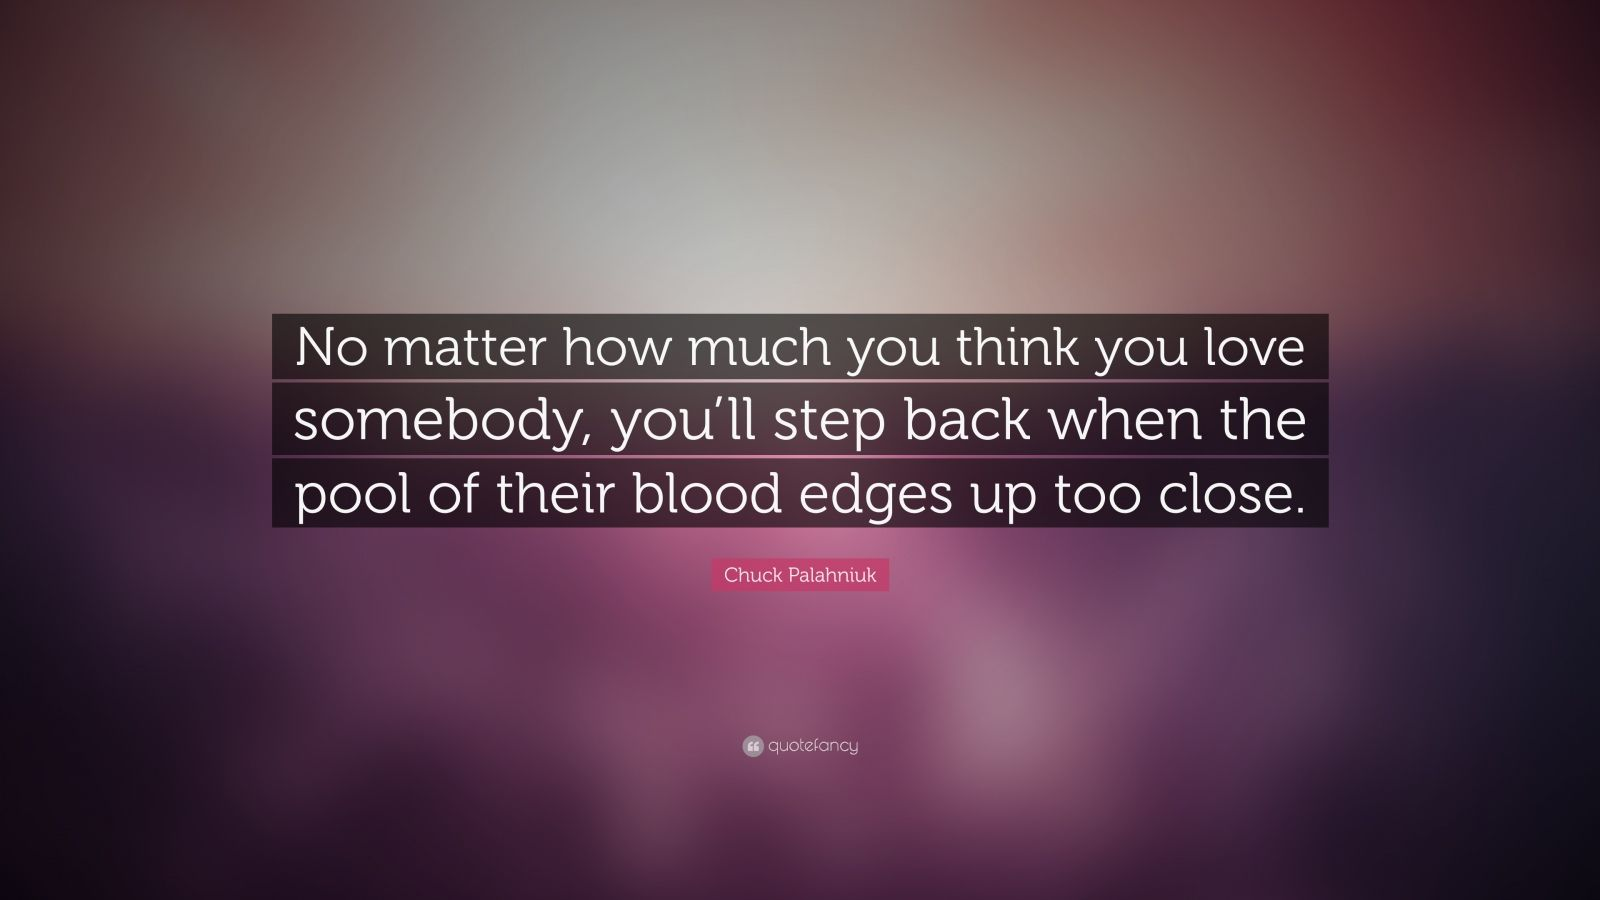 """Chuck Palahniuk Quote: """"No matter how much you think you love somebody, you'll step back when the pool of their blood edges up too close."""""""